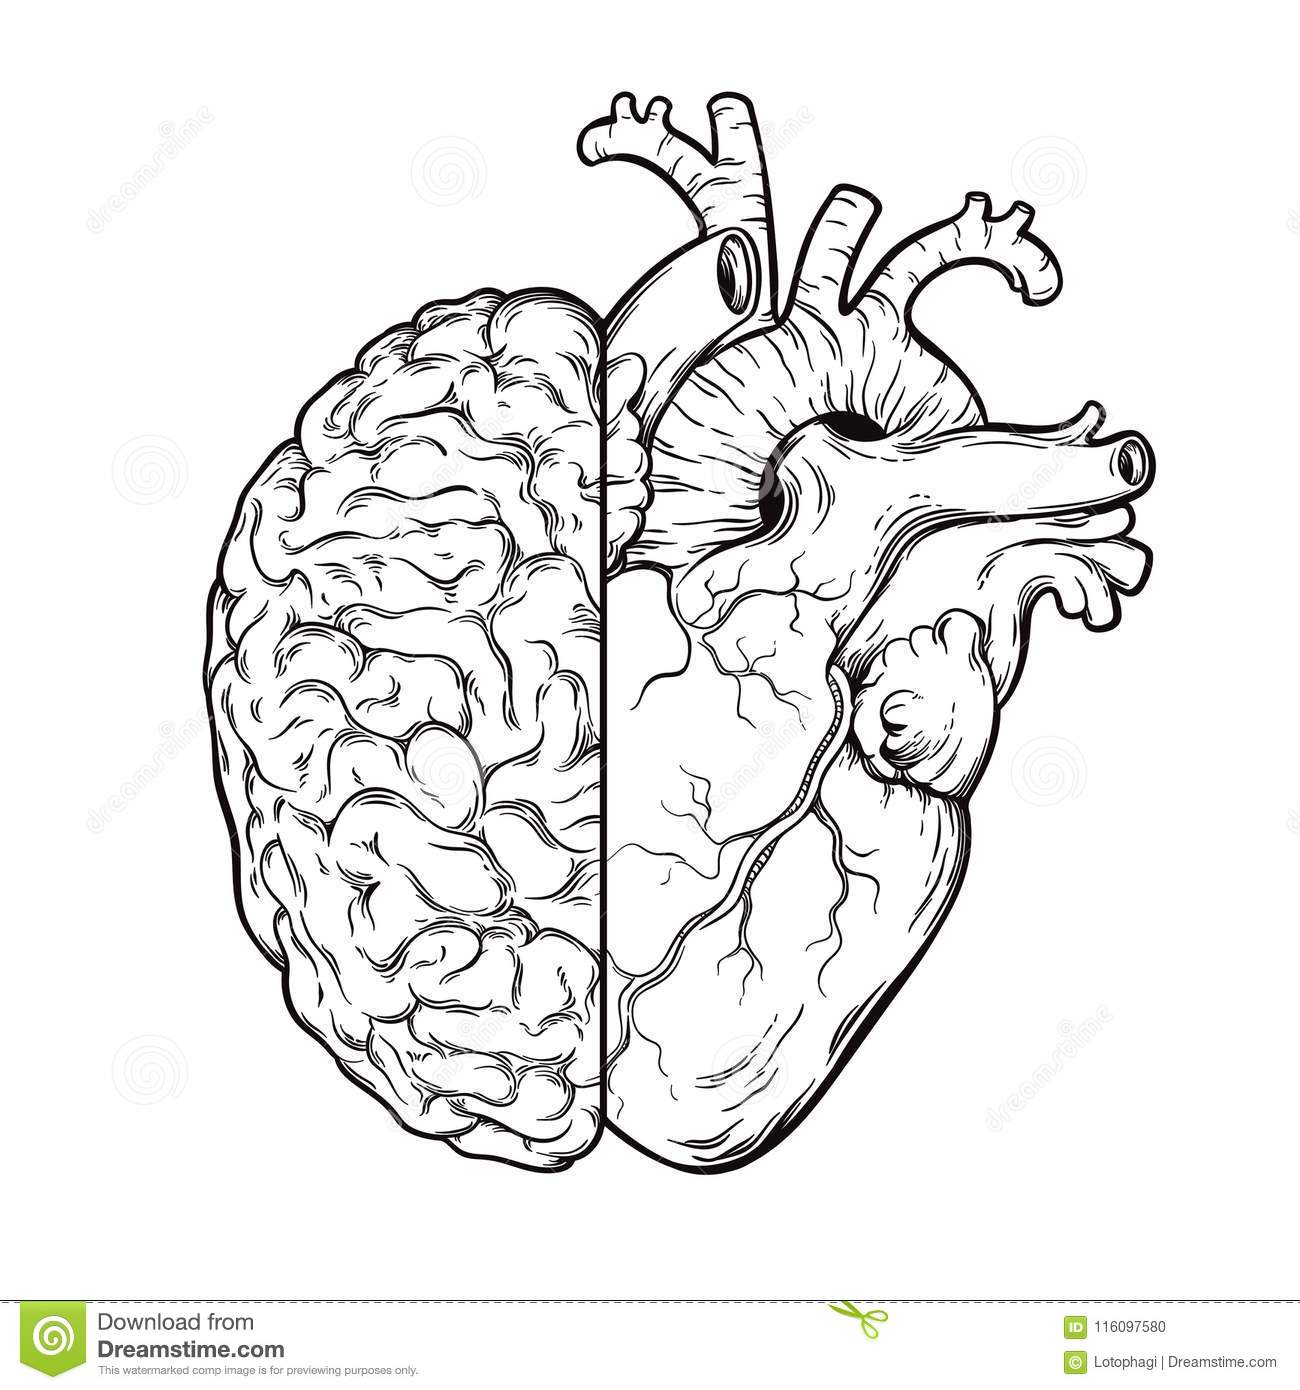 Hand drawn line art human brain and heart halfs - Logic and emotion priority concept. Print or tattoo design isolated on white bac